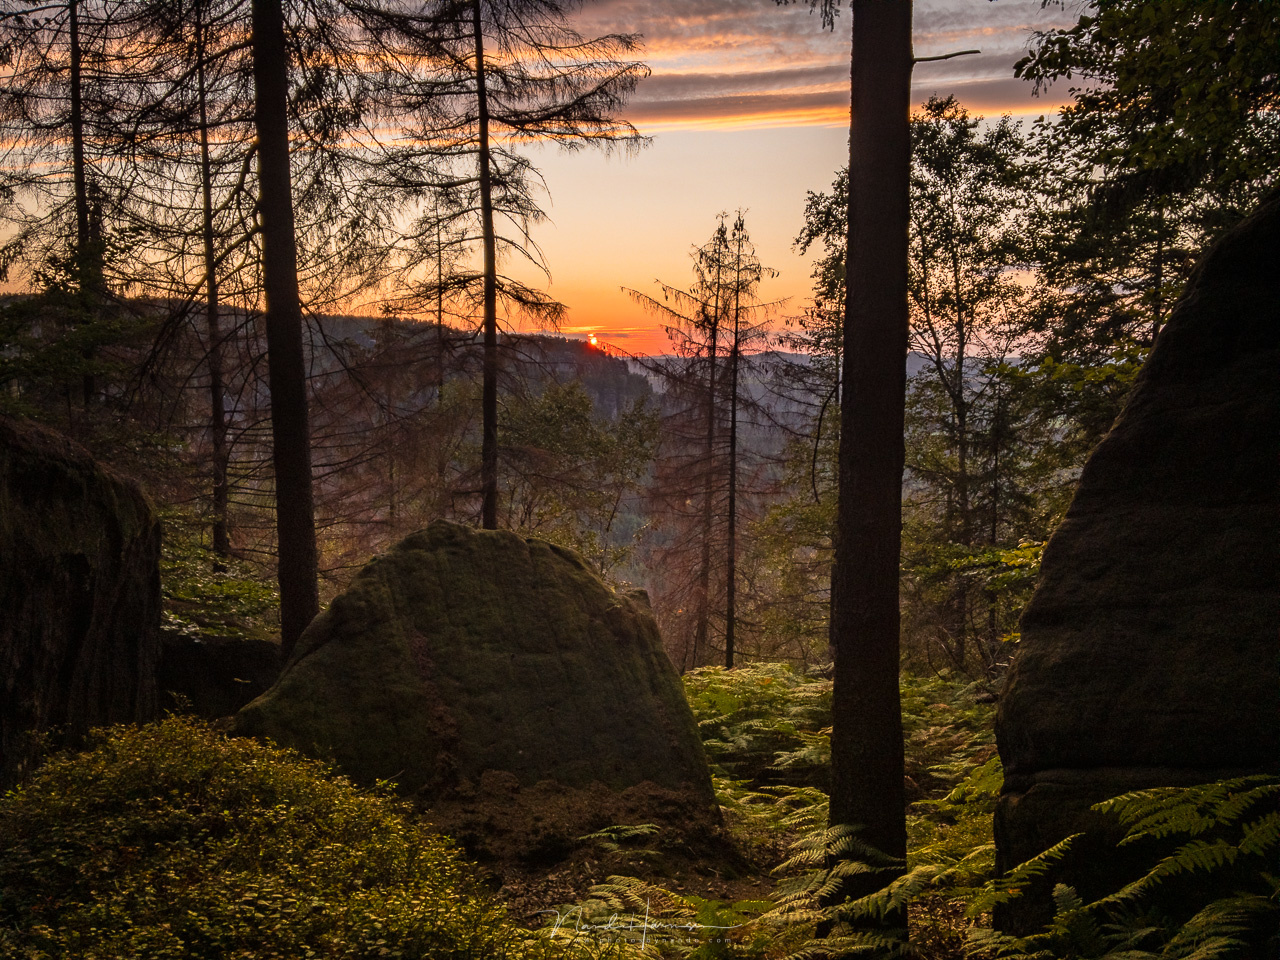 Sunset from the path over the Kleiner Winterberg. A quick capture with my smartphone in DNG file format and post-processed in Lightroom. (iPhone 6s | 4mm | ISO25 | f/2,2 | 1/900 with -2,7EV | HDR setting enabled)